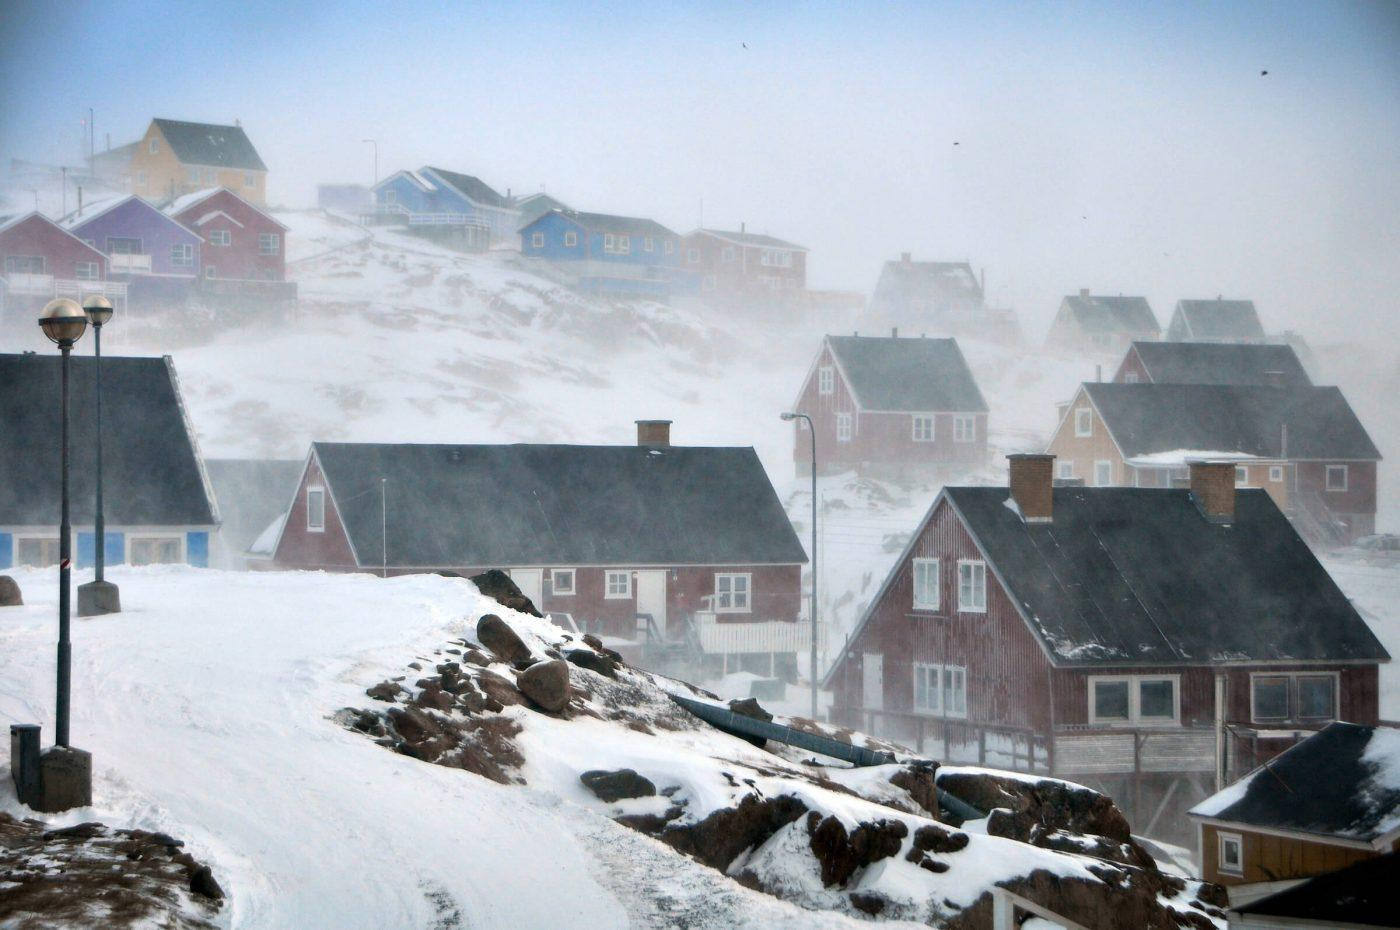 Storm over Sisimiut. Photo by Mads Pihl